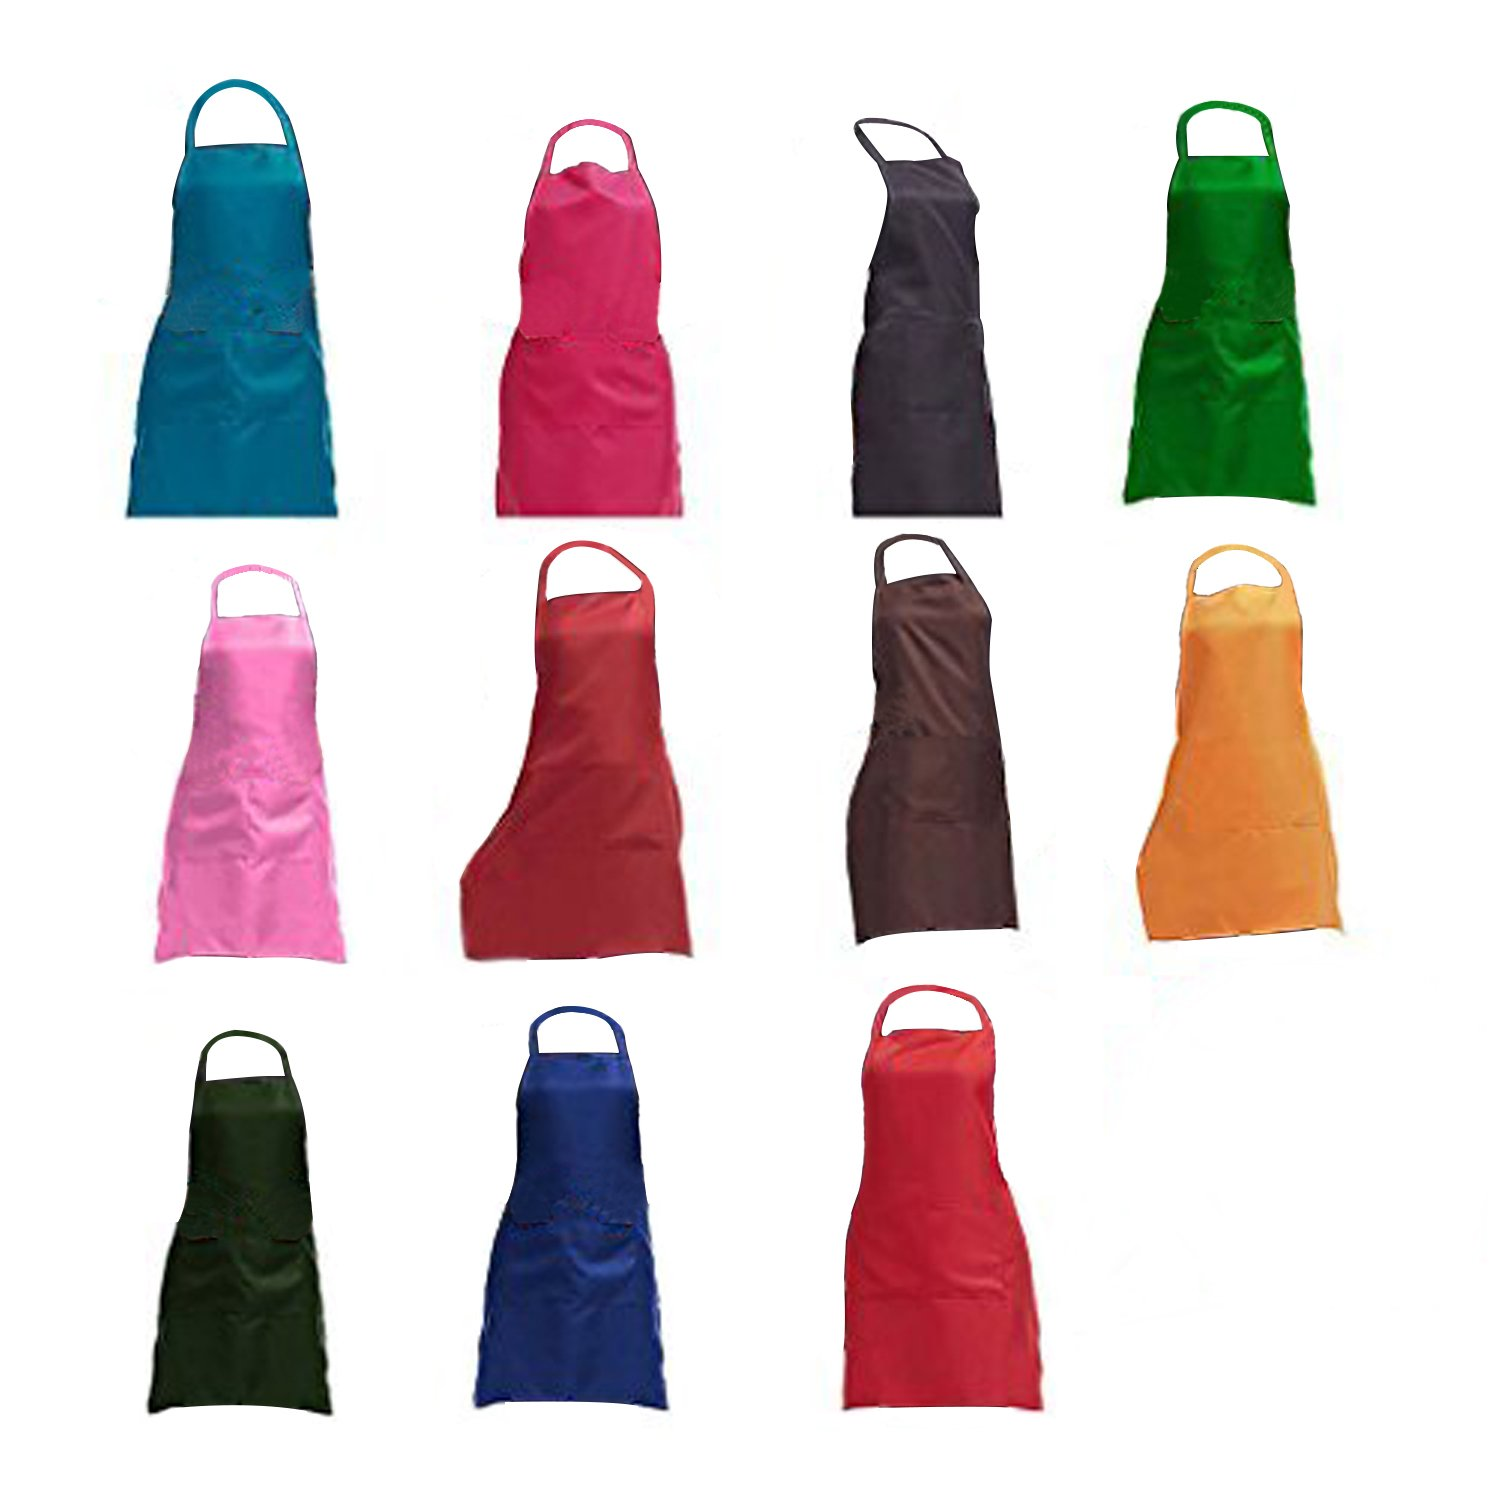 TRENDBOX Total 11 PCS Plain Color Bib Apron Adult Women Unisex for Waist Size 23'' to 35'' Durable Comfortable with Front Pocket Washable for Cooking Baking Kitchen Restaurant Crafting by TRENDBOX